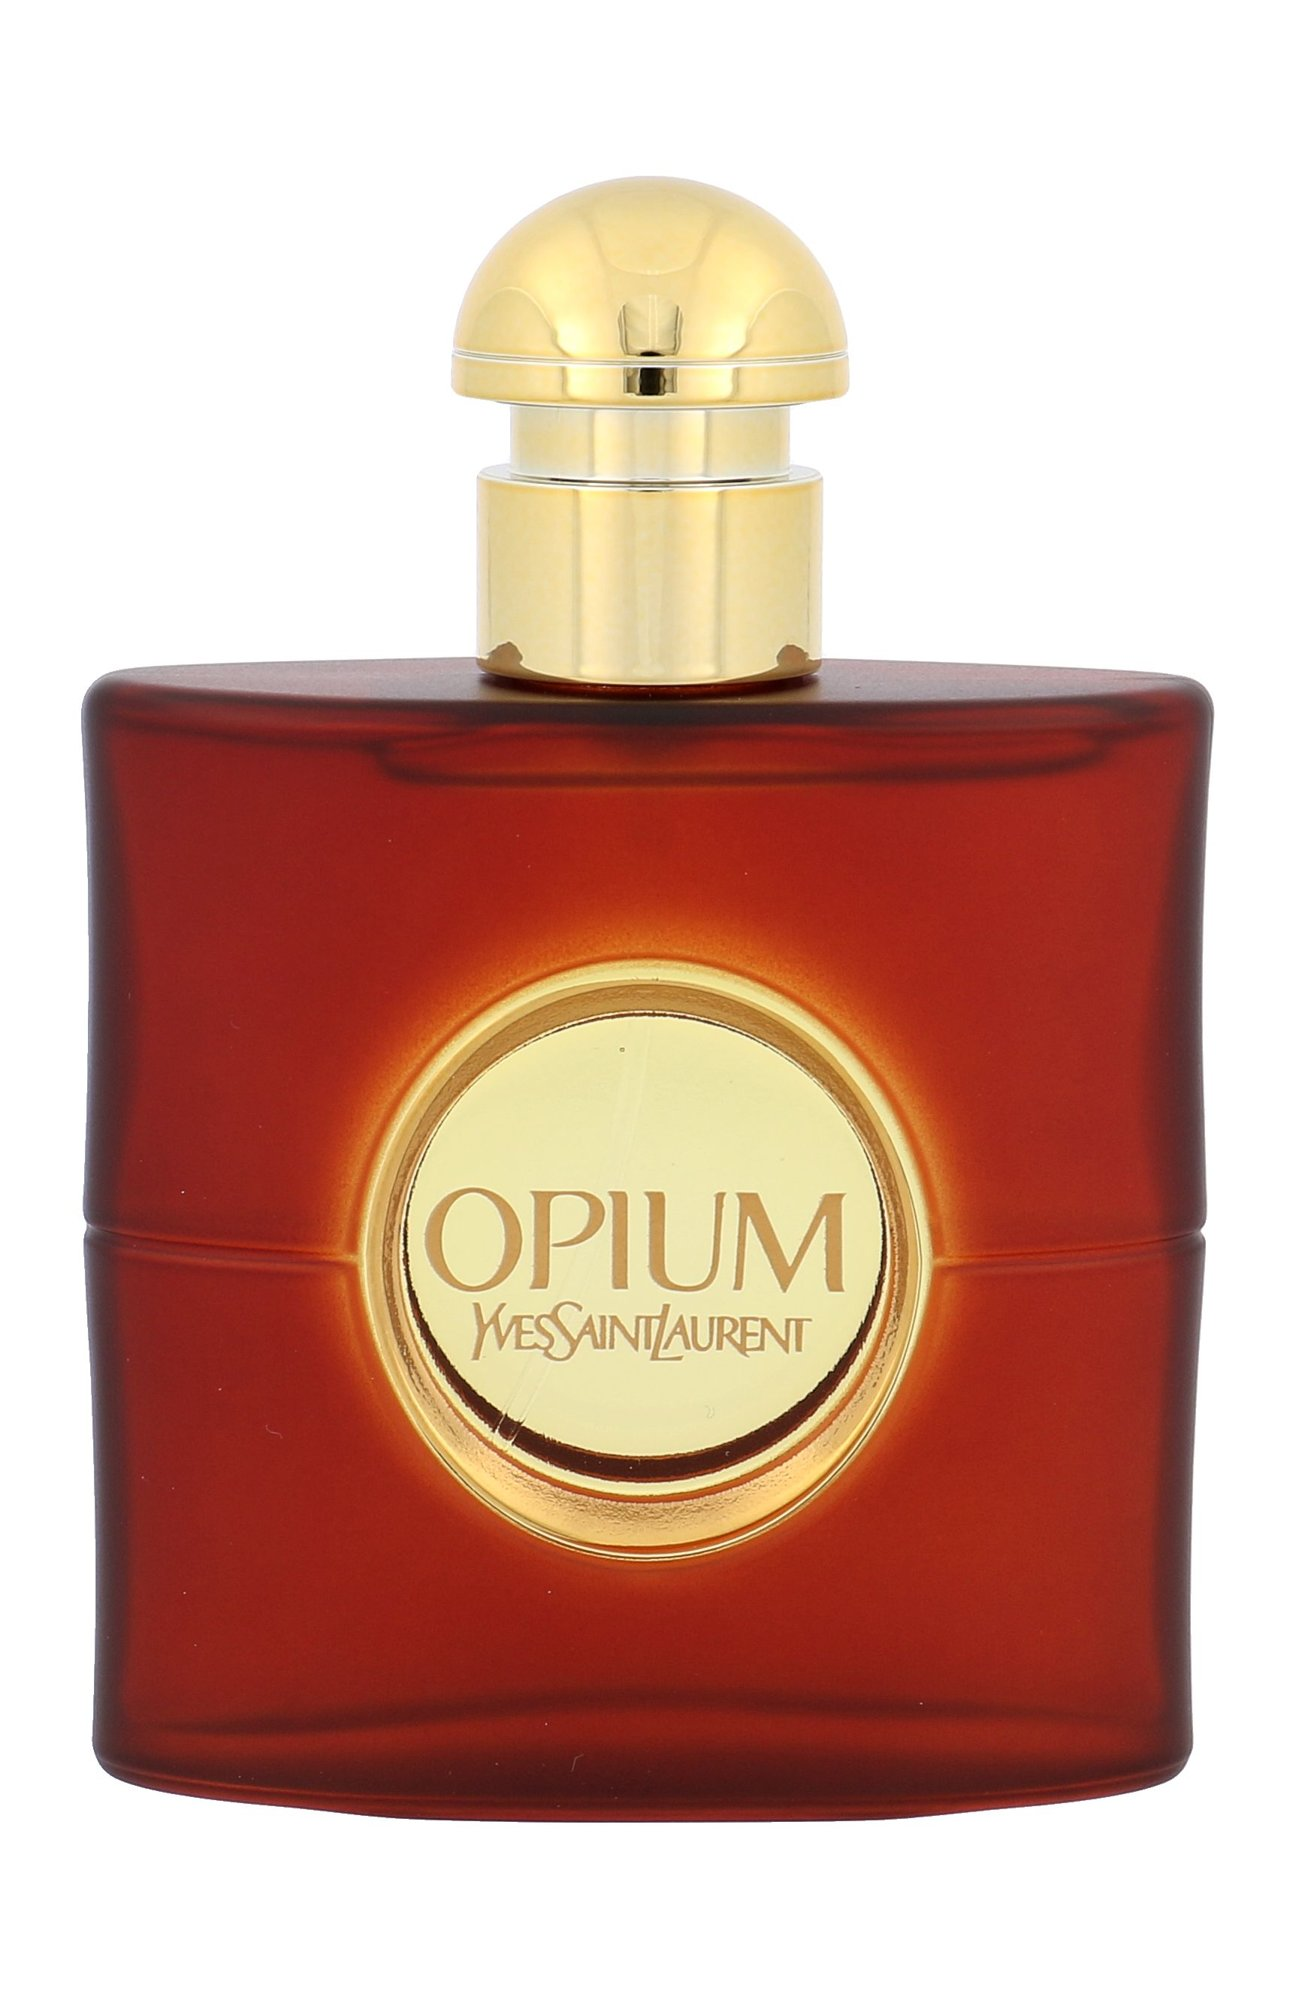 Yves Saint Laurent Opium 2009 EDT 50ml